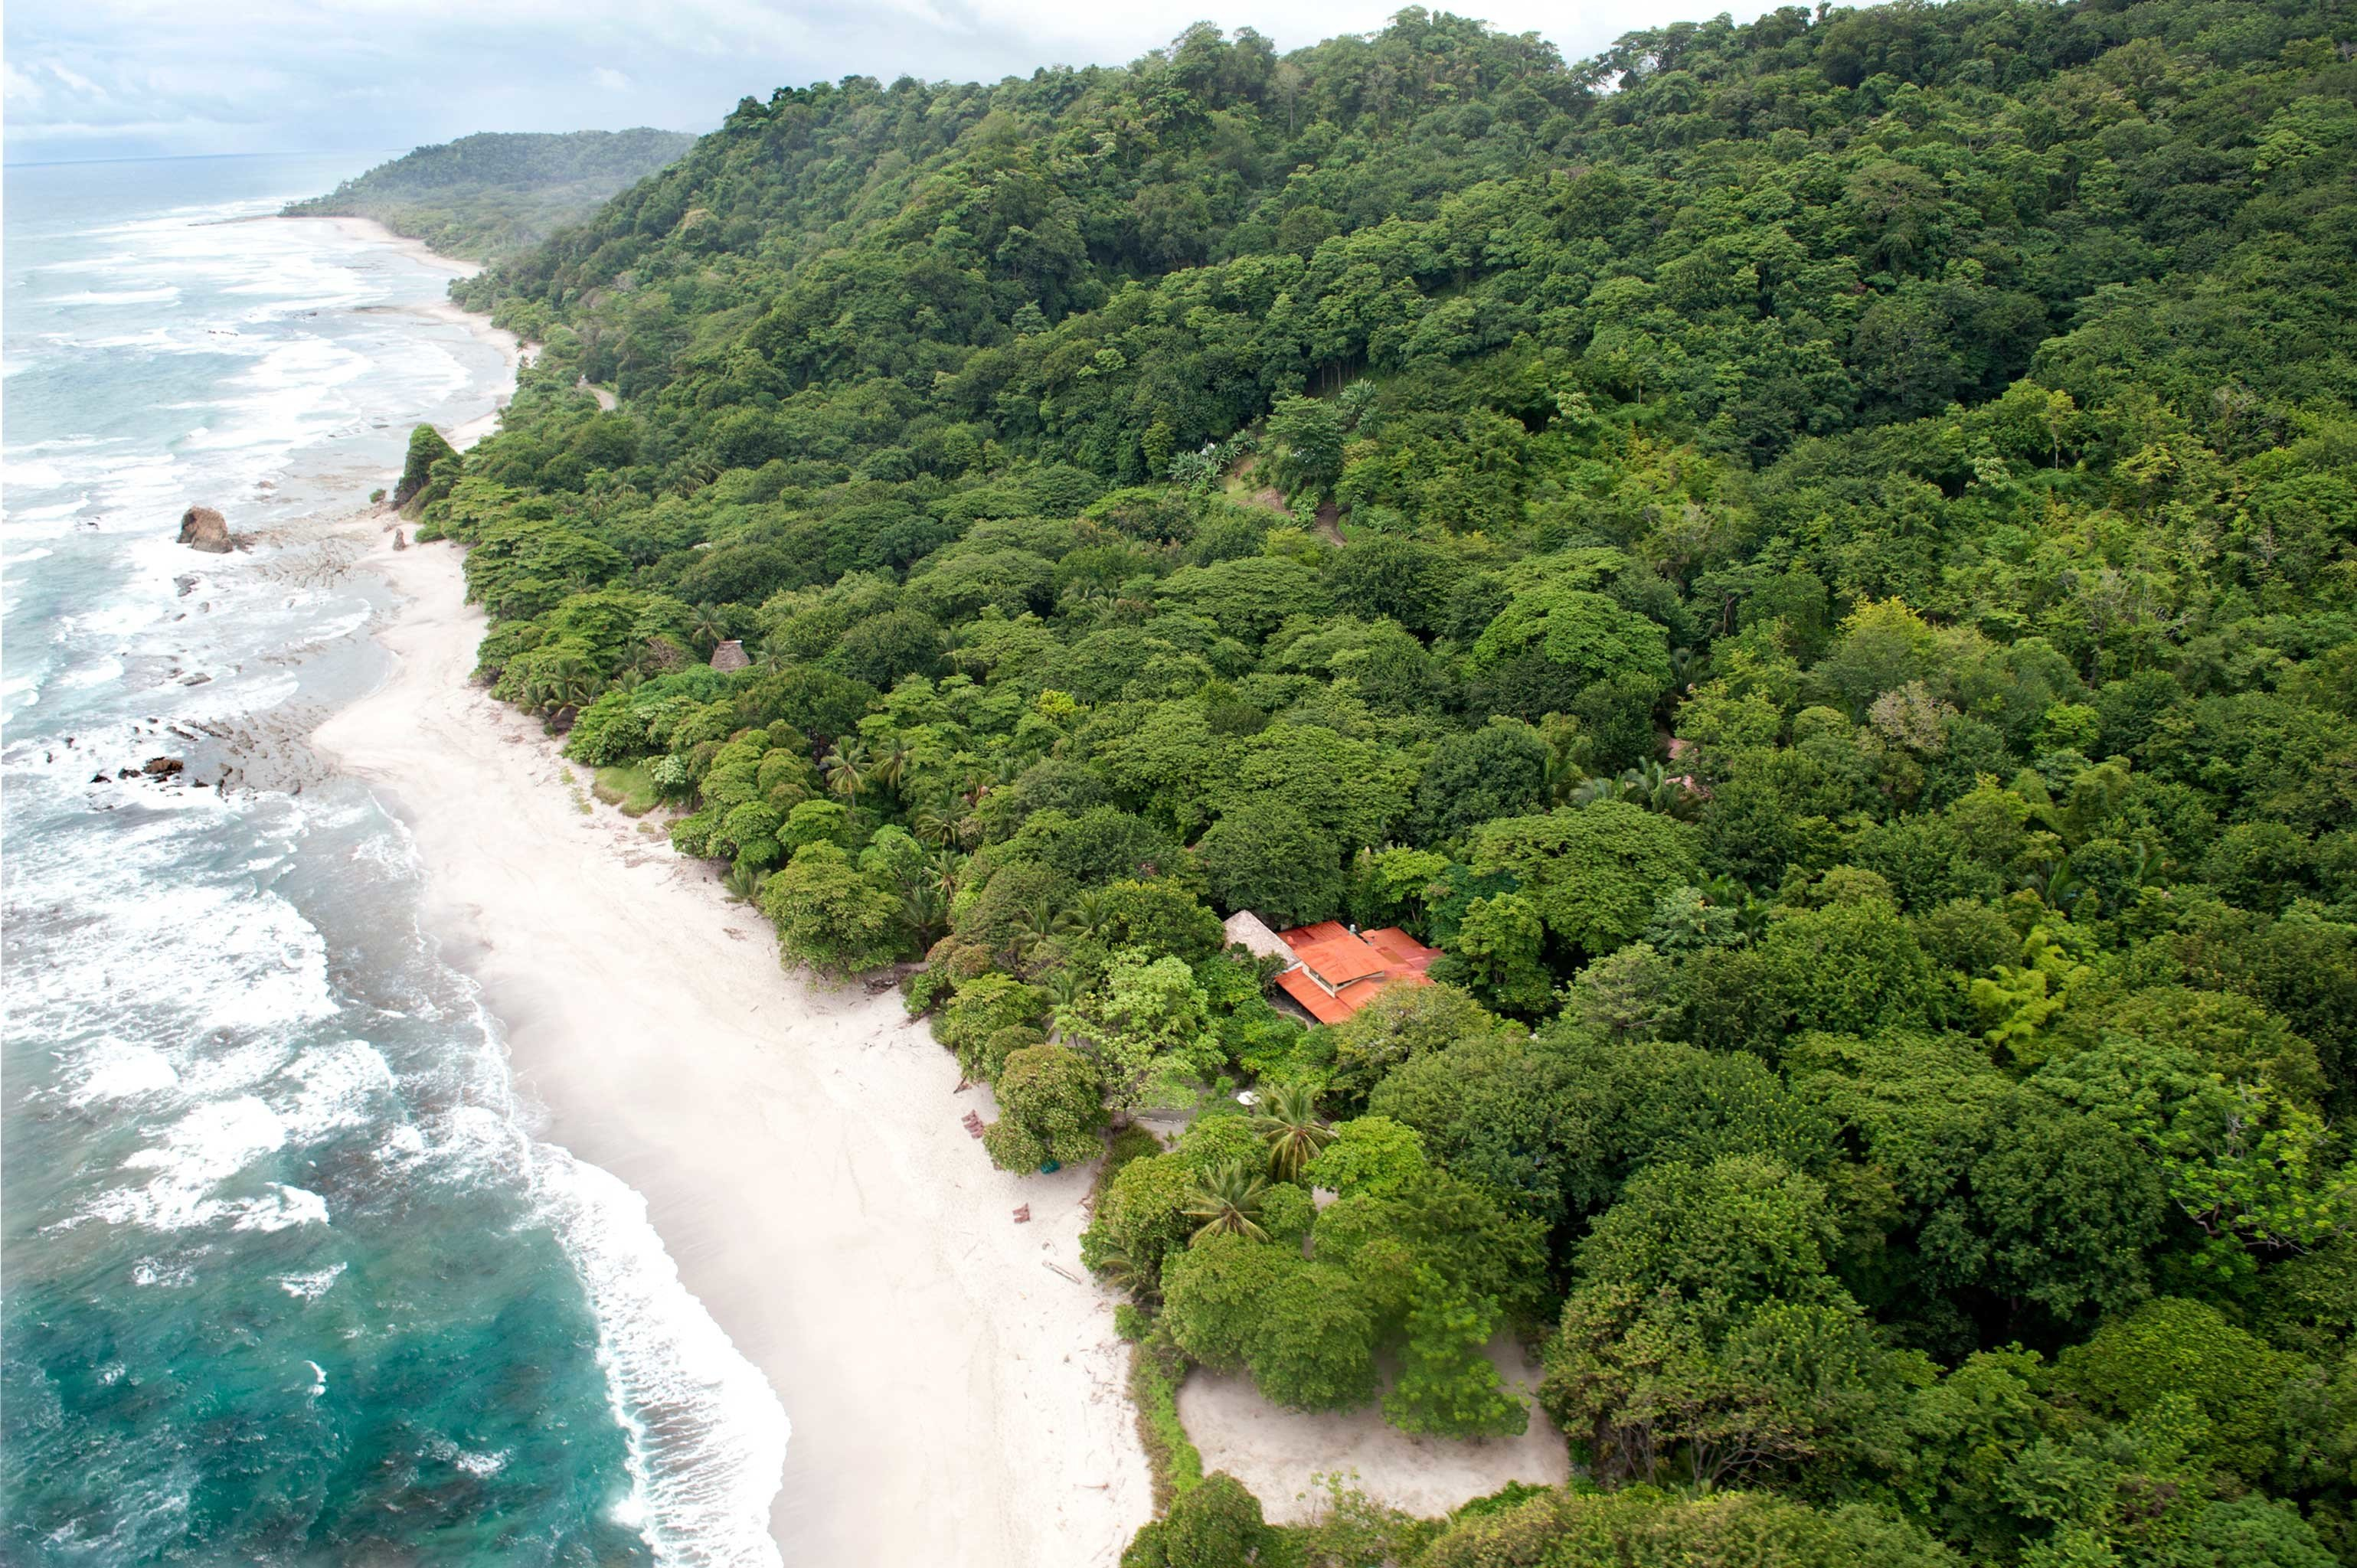 Beachfront Hotels Jungle Ocean Outdoor Activities Scenic views tree outdoor hill station water Nature body of water River geological phenomenon Waterfall Coast rainforest Forest water feature traveling wave surrounded